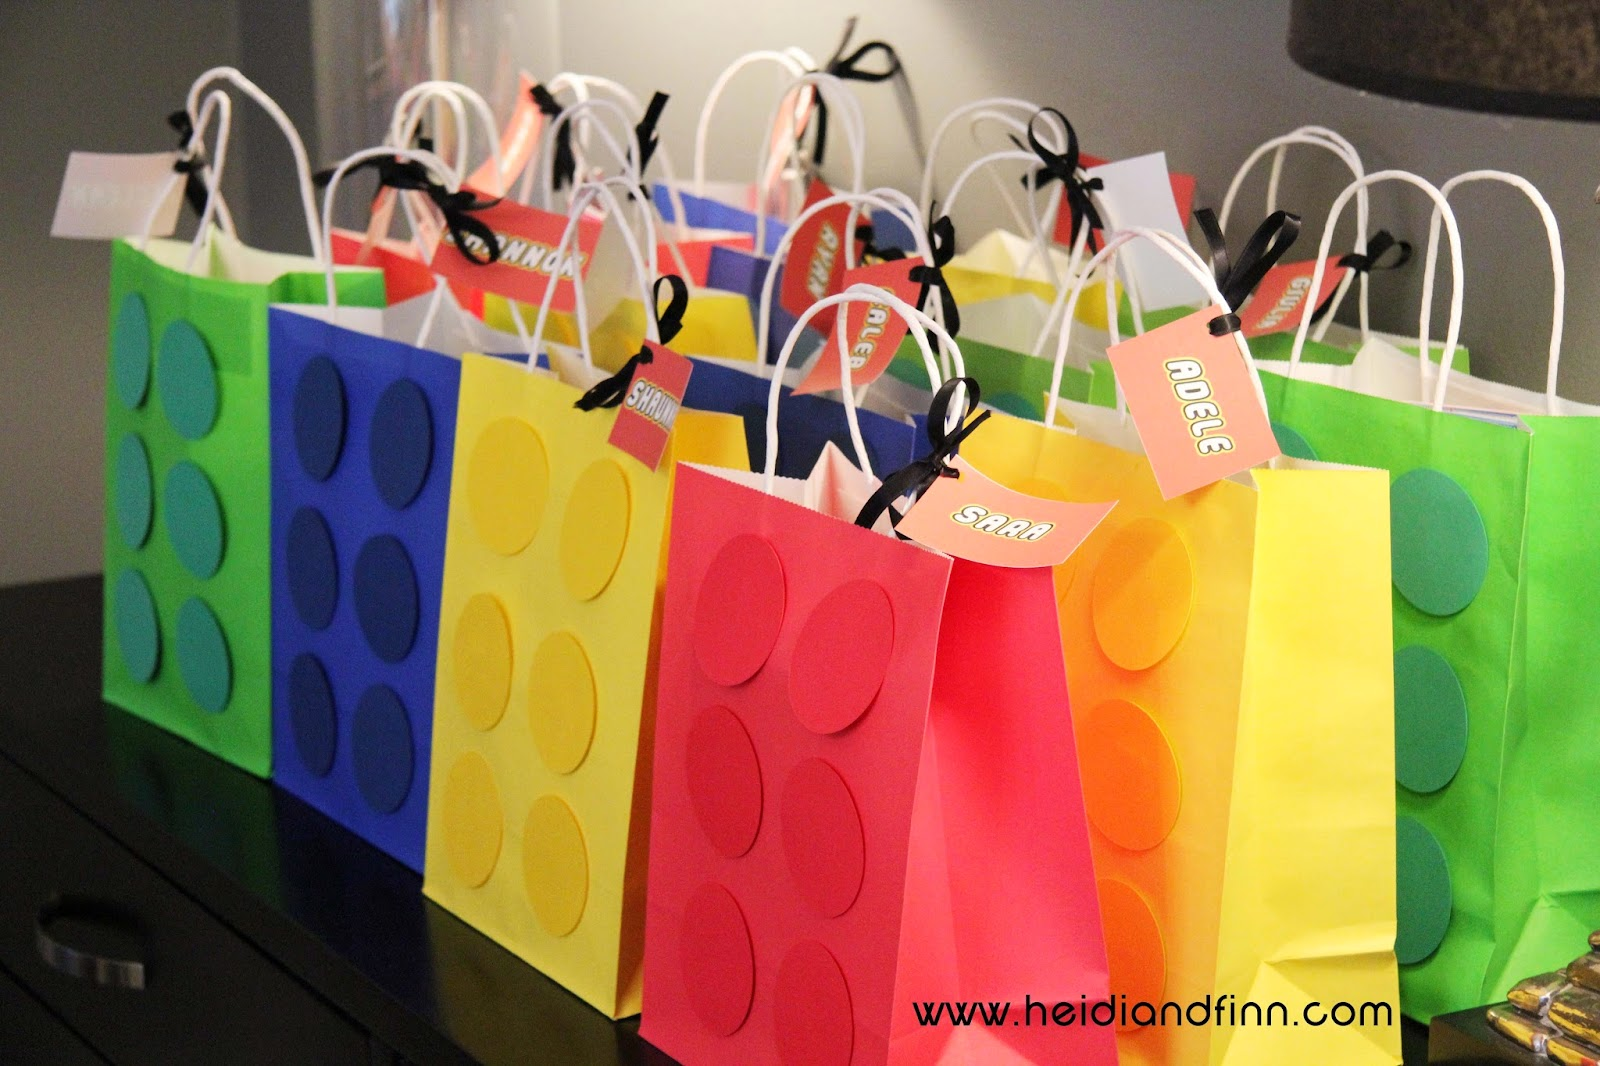 Heidiandfinn Modern Wears For Kids Lego Party Birthday Ideas Decorations And Free Printables